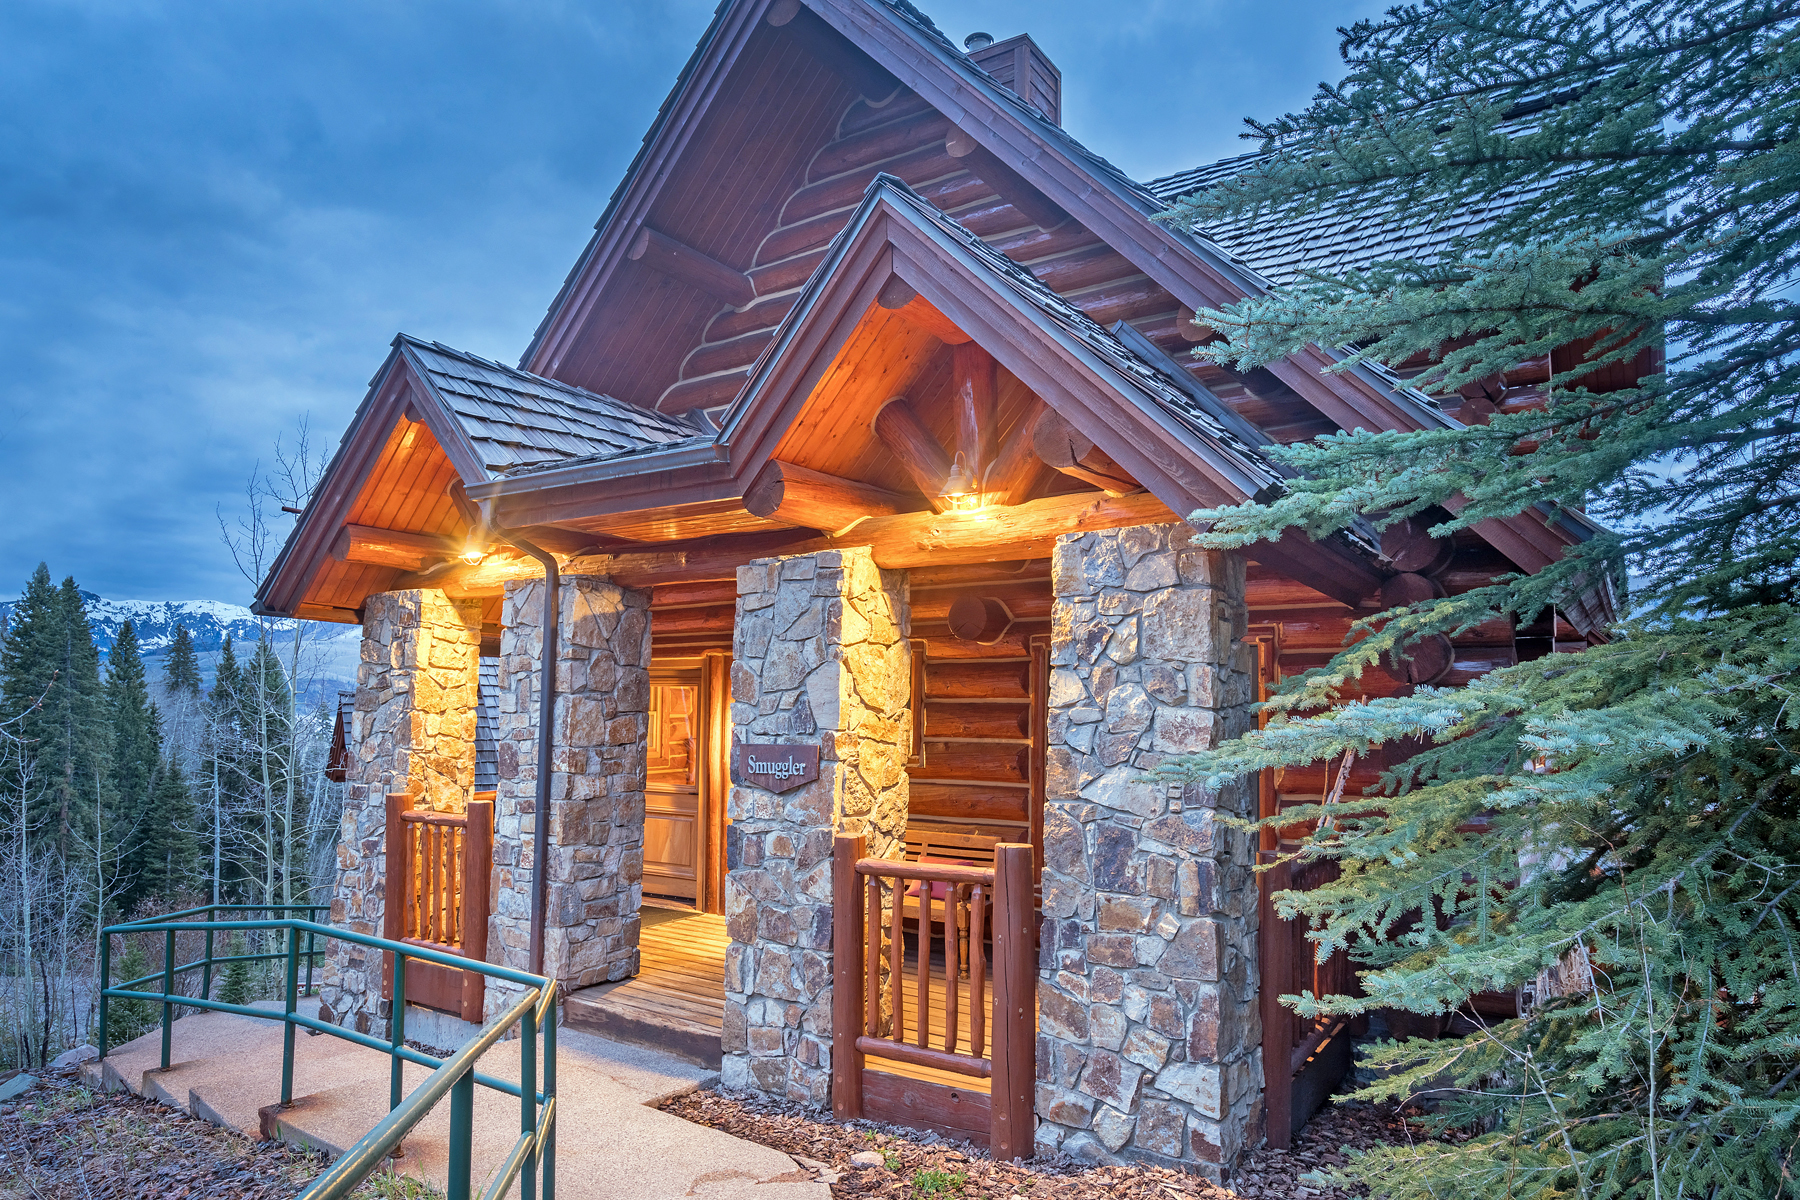 Condominium for Sale at Mountian Lodge - Smuggler Cabin 7 457 Mountain Village Blvd., Unit 7 Telluride, Colorado, 81435 United States